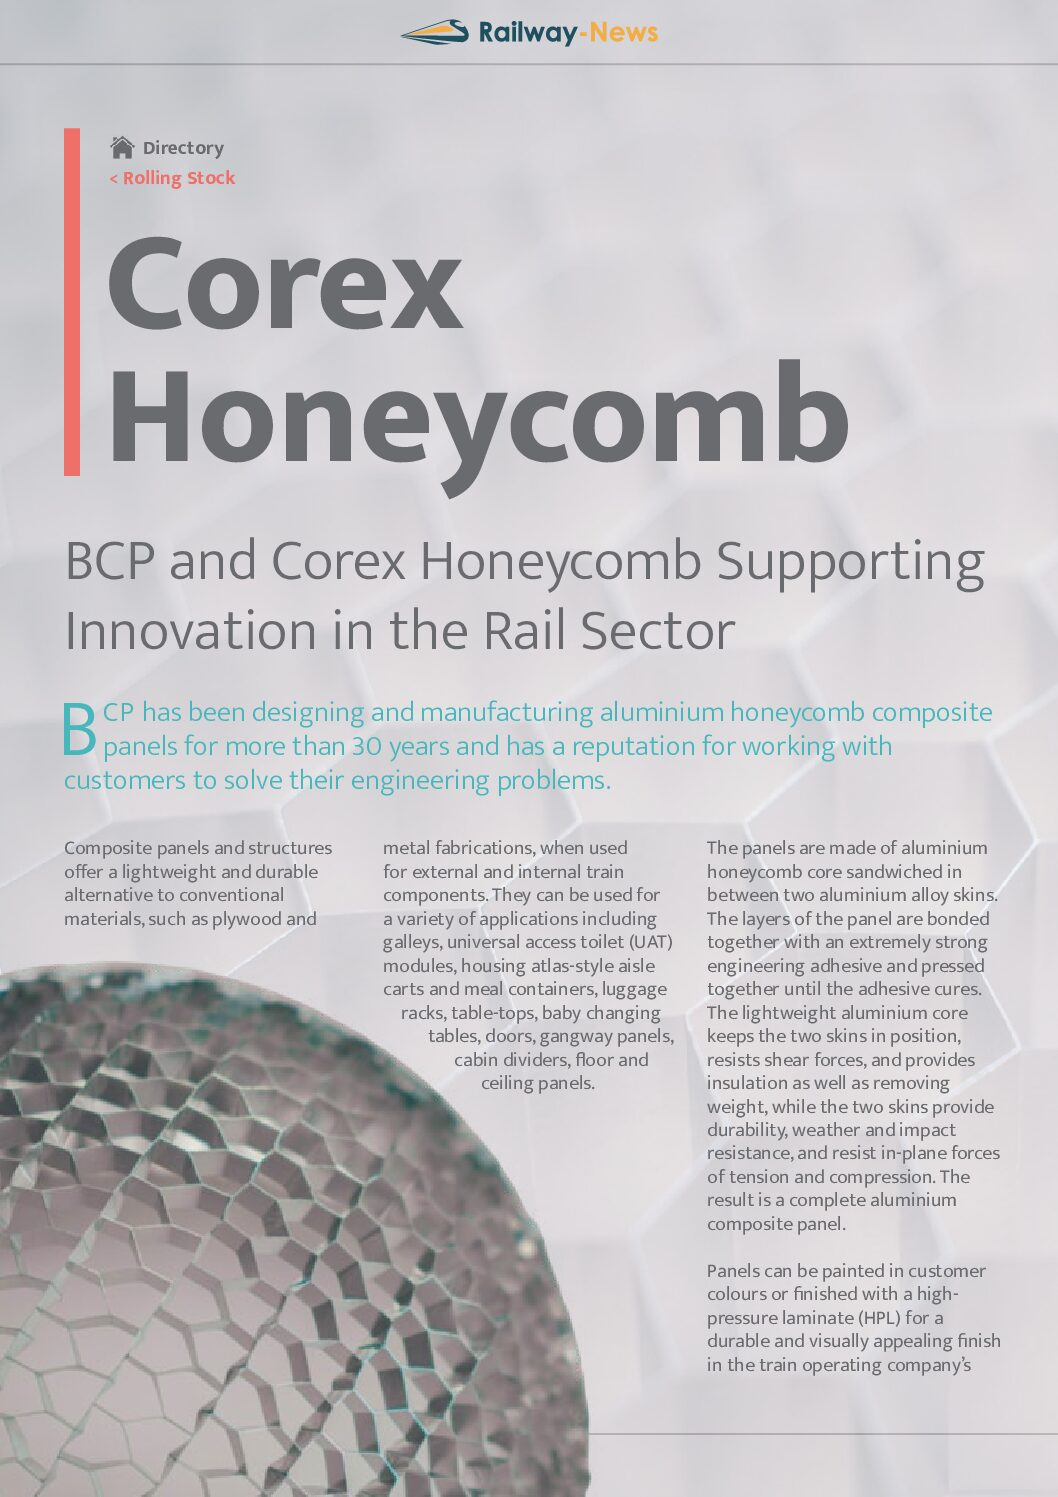 BCP and Corex Honeycomb Supporting Innovation in the Rail Sector